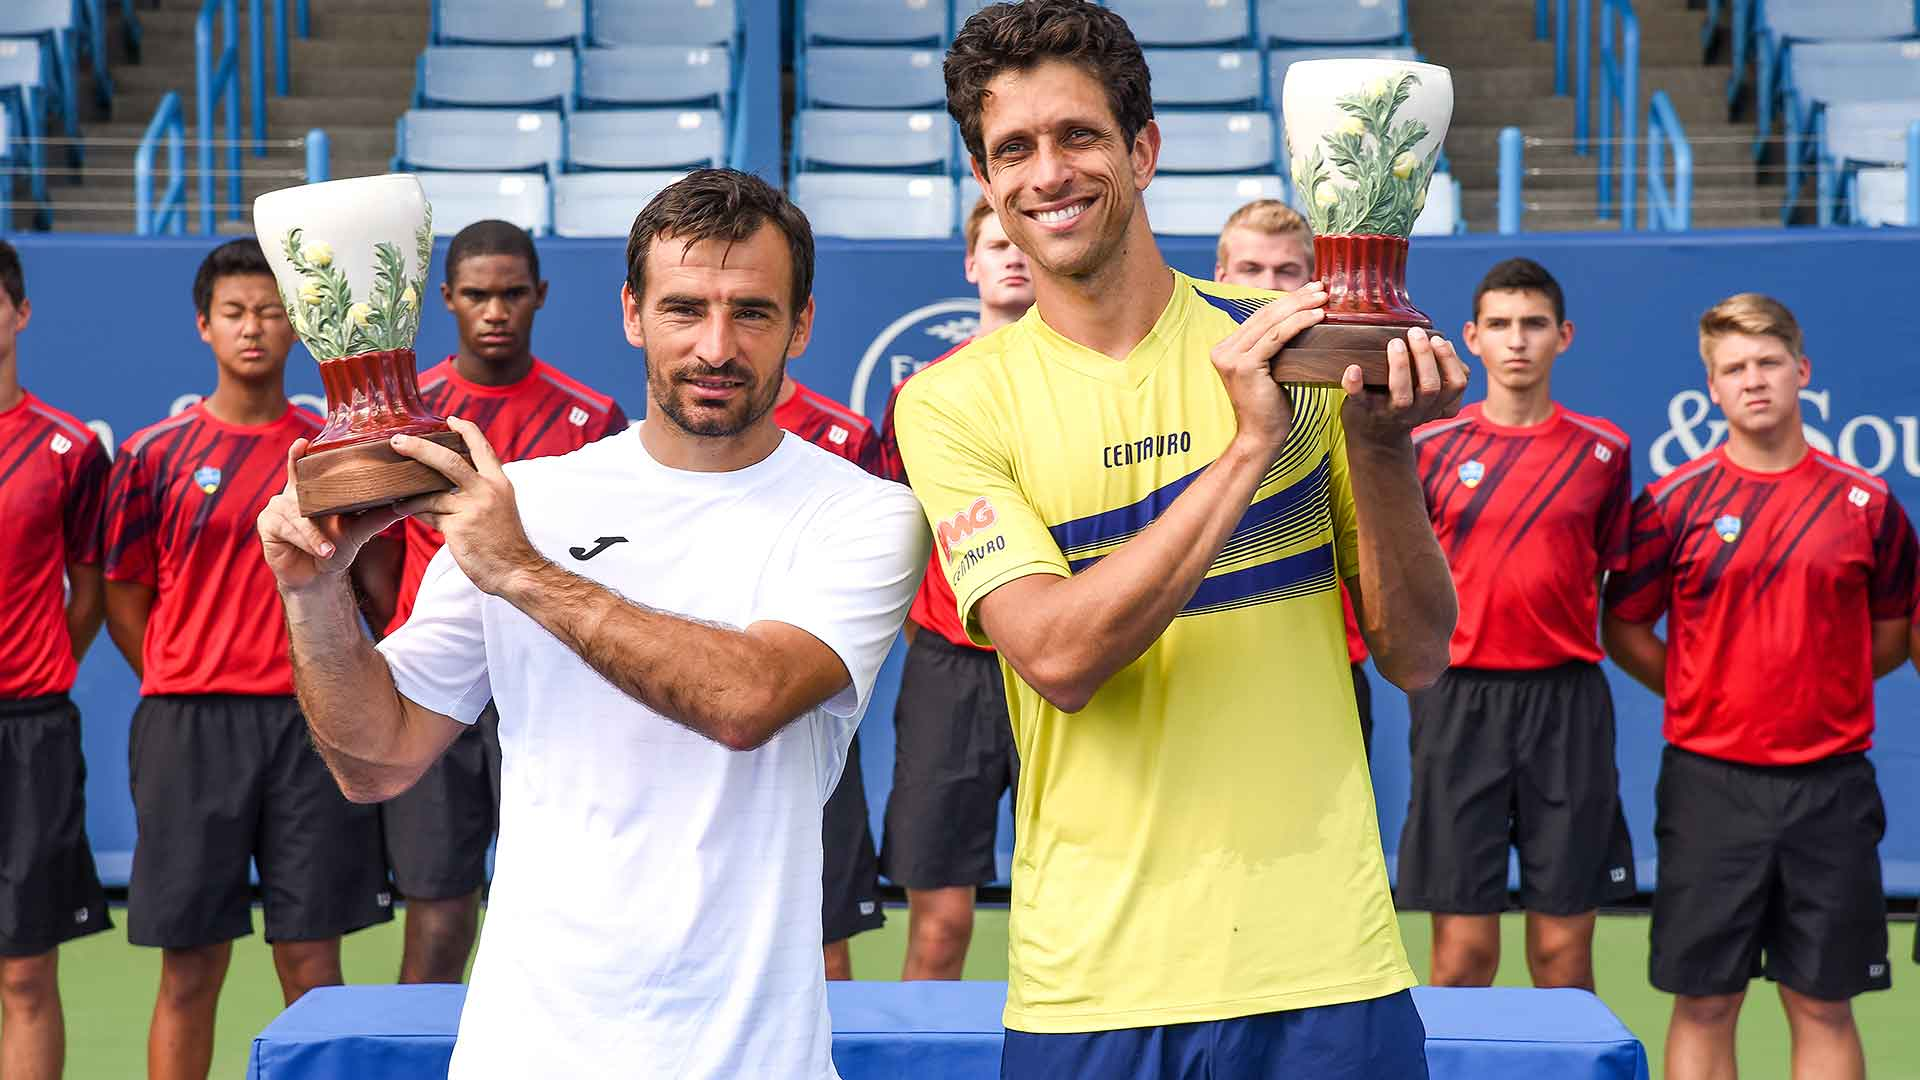 Ivan Dodig and Marcelo Melo claim their fourth ATP World Tour Masters 1000 title as a team.